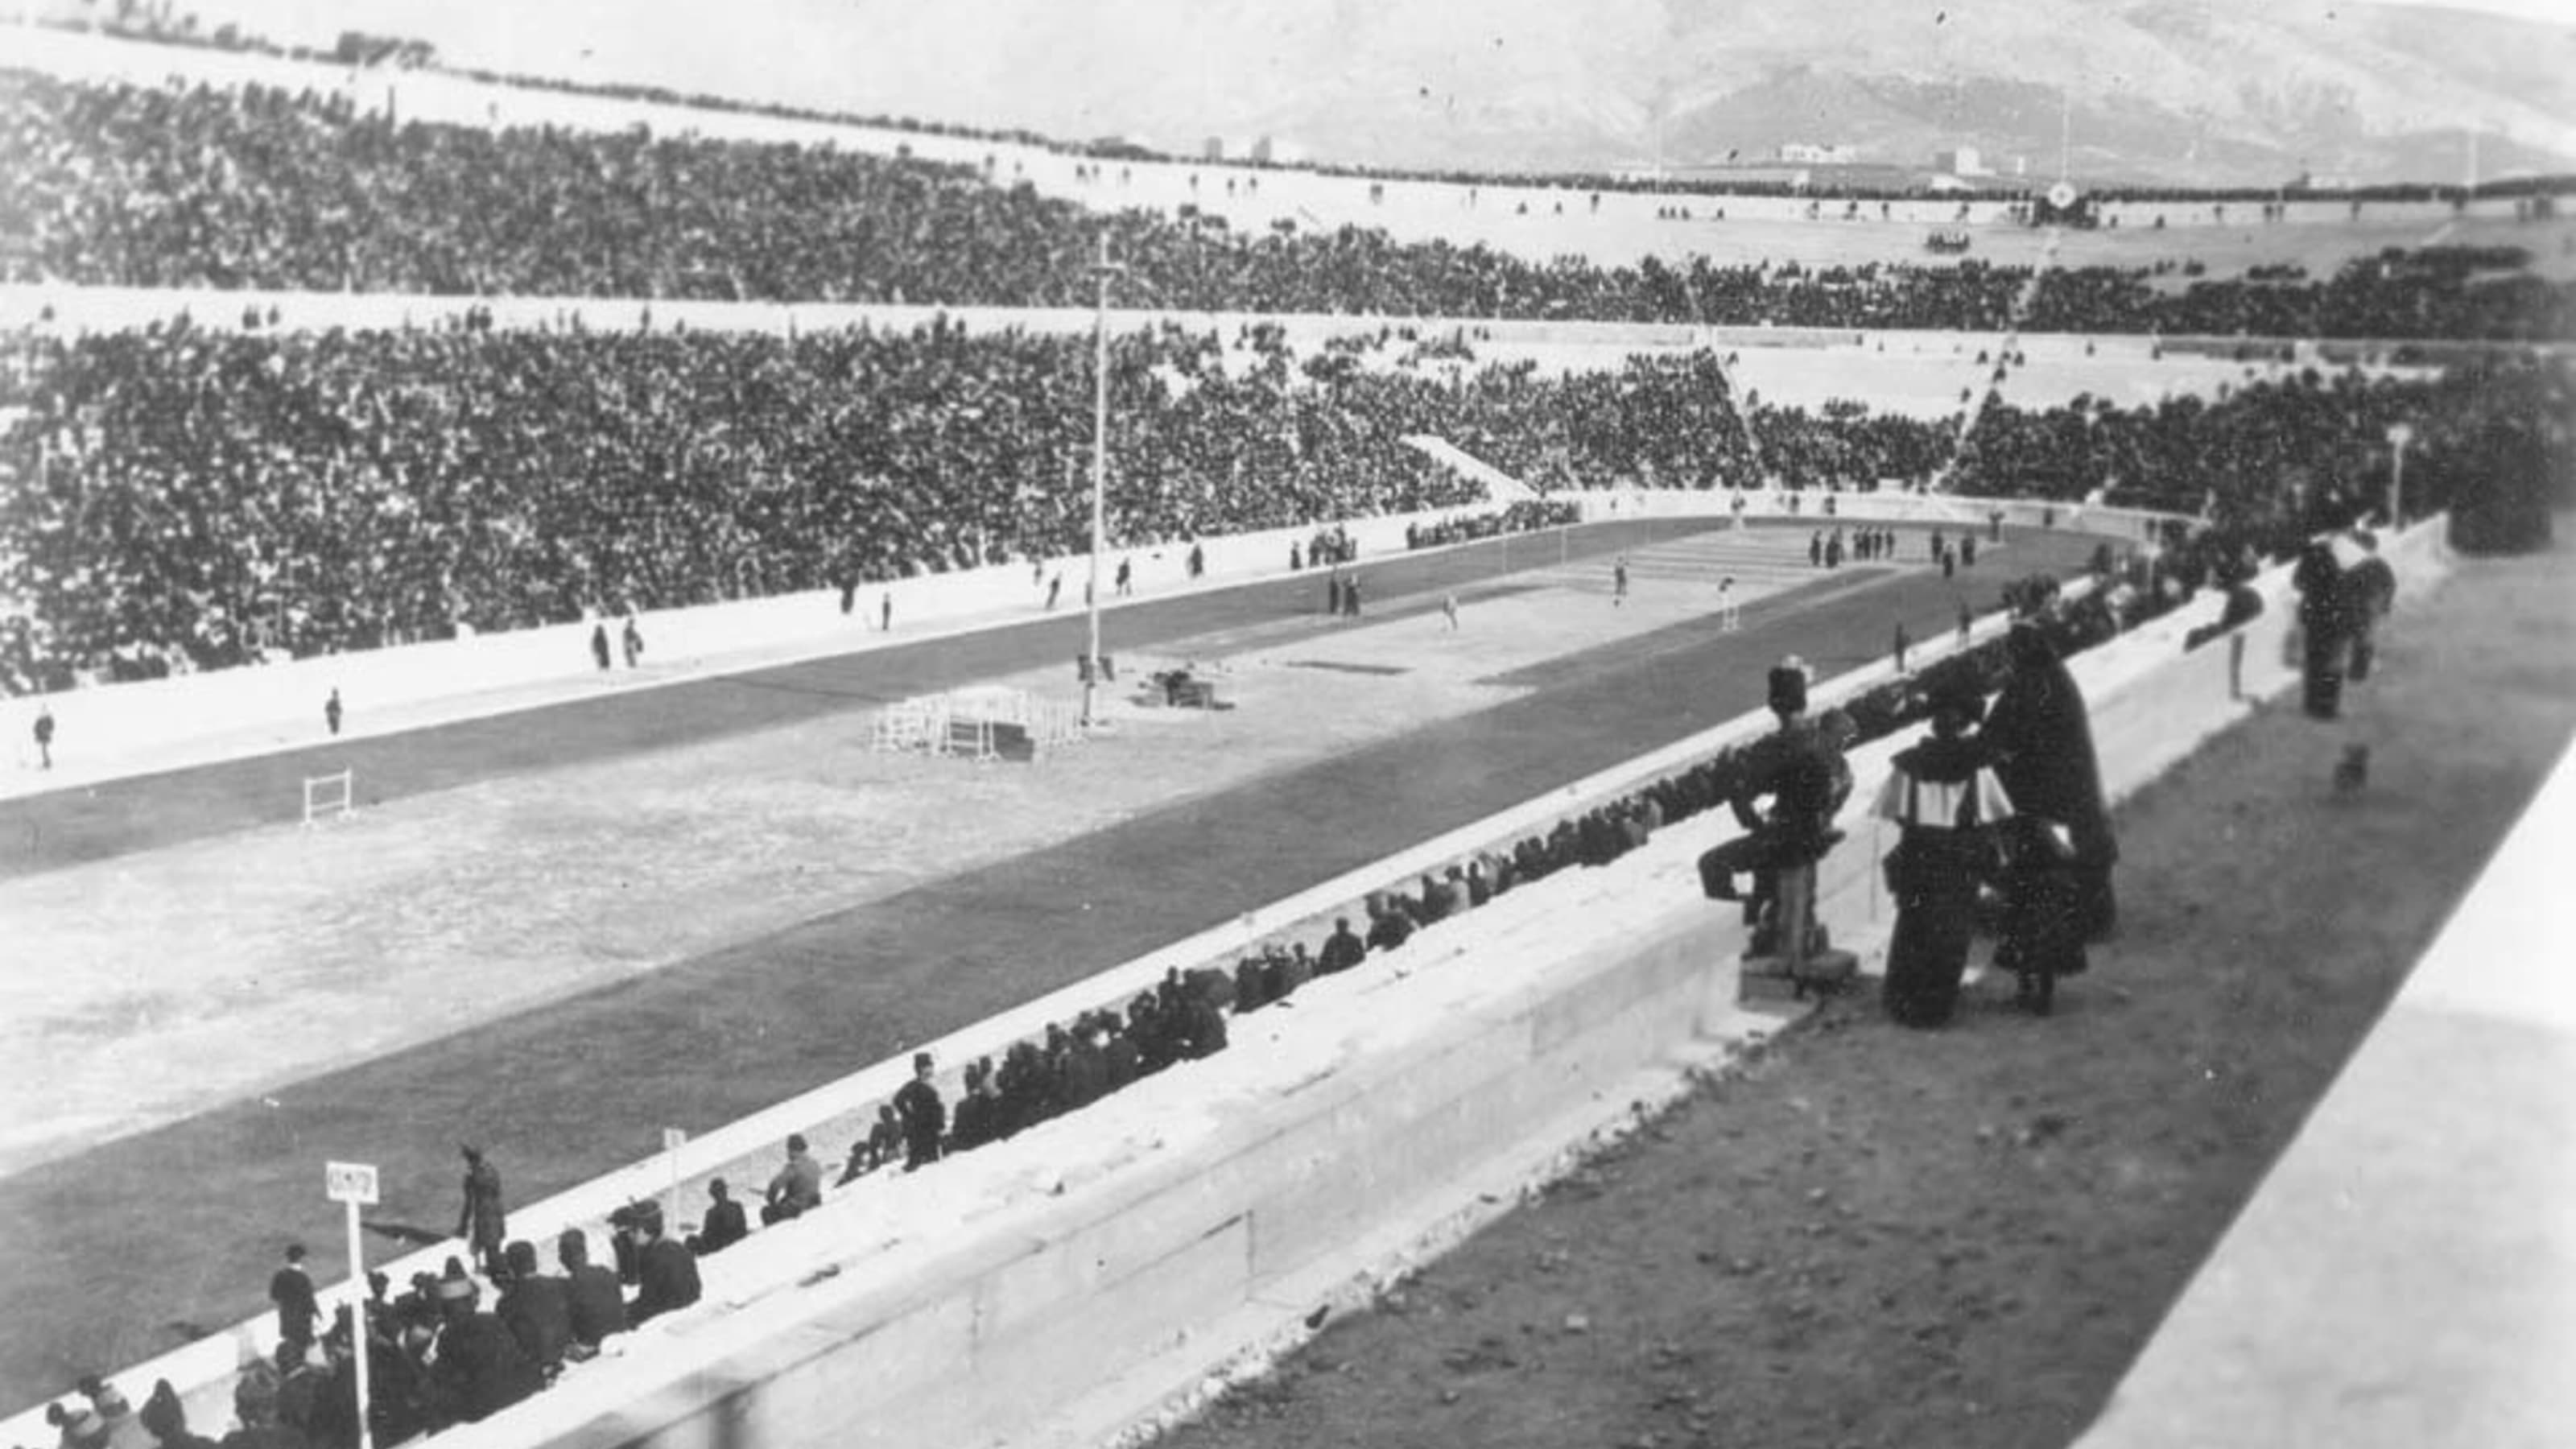 Athens 1896: Top reasons why these Olympics were important for modern sport